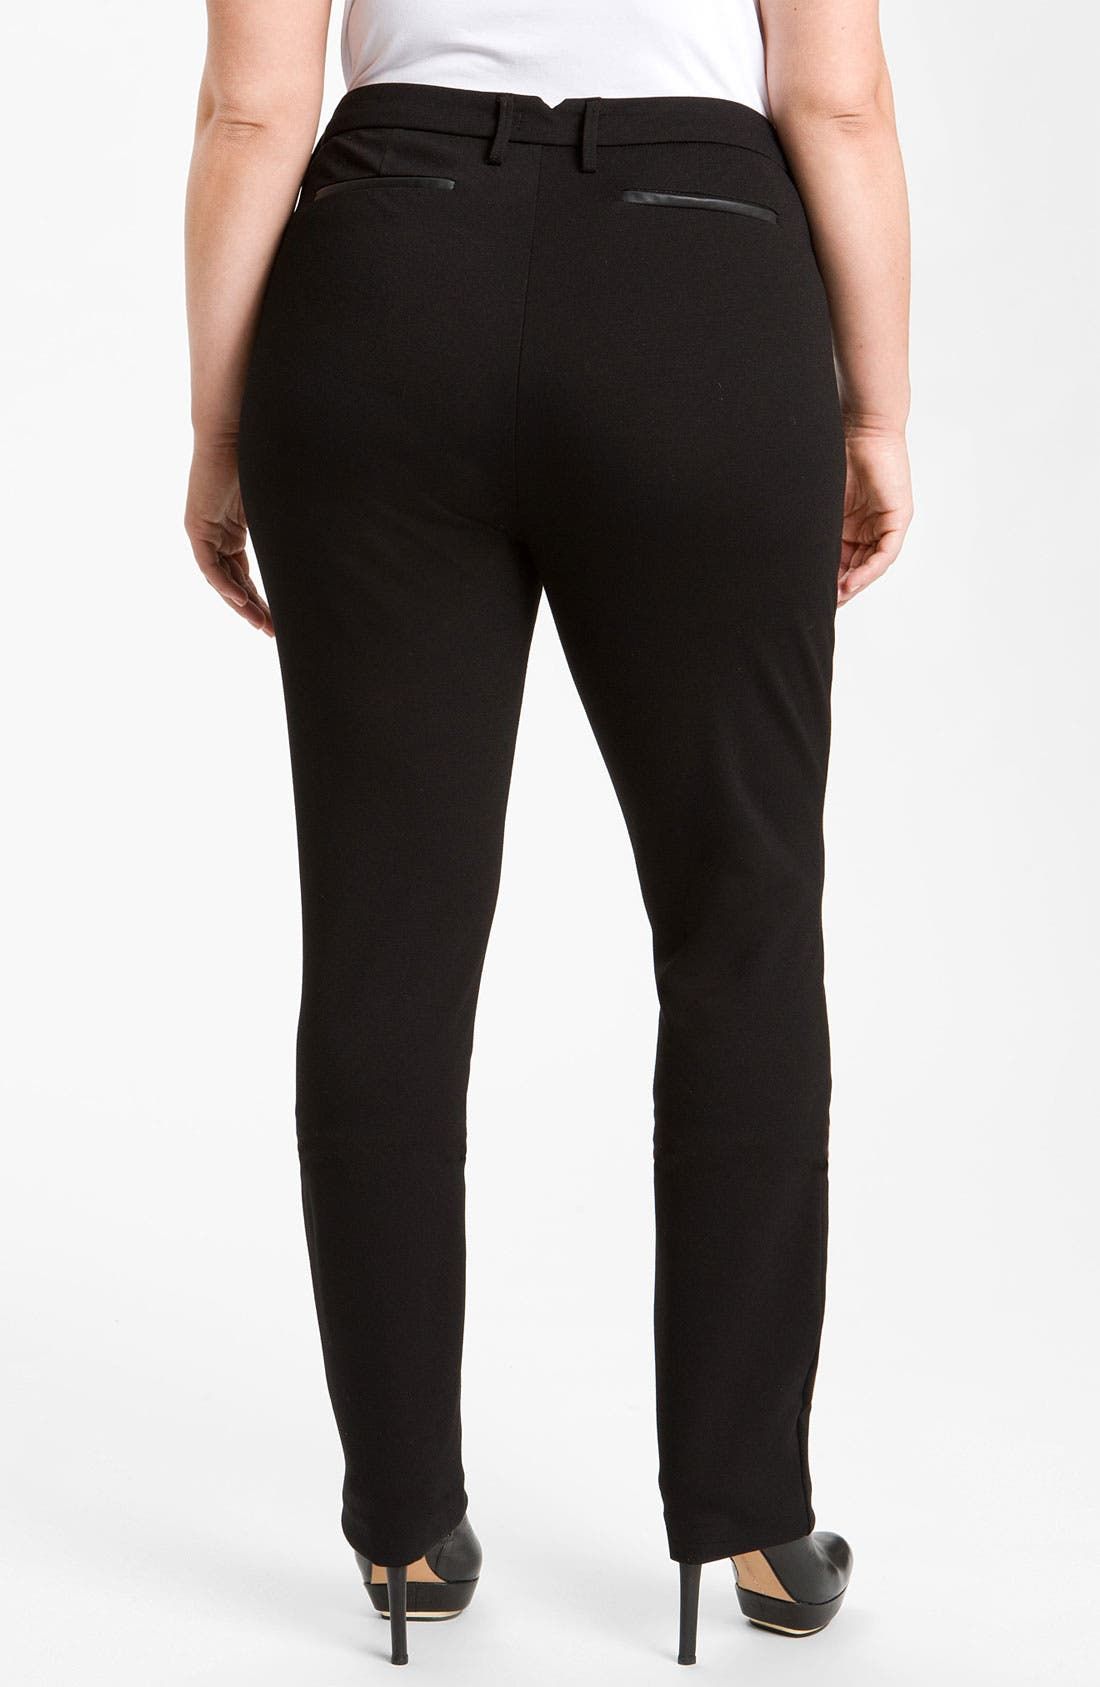 Alternate Image 1 Selected - NYDJ Stretch Ponte Knit Pants (Plus)